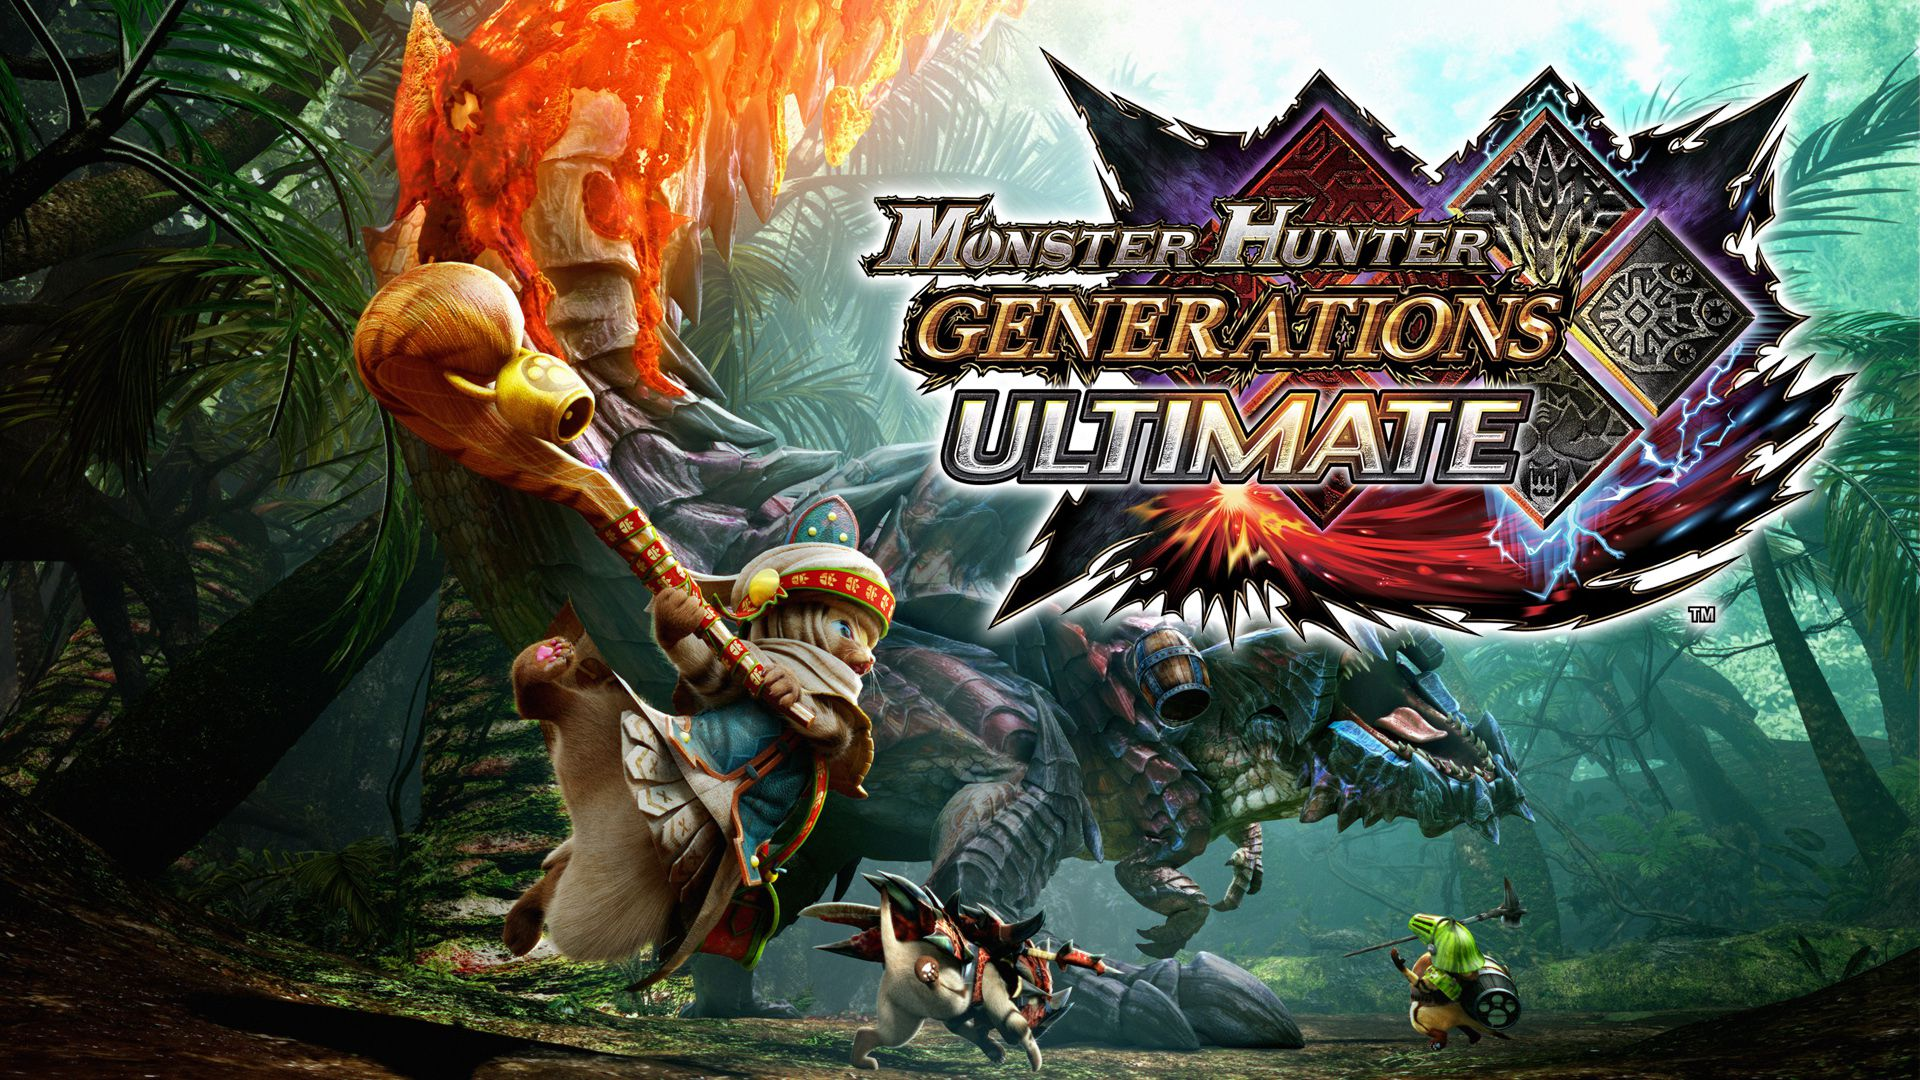 Monster Hunter Generations Ultimate launch trailer